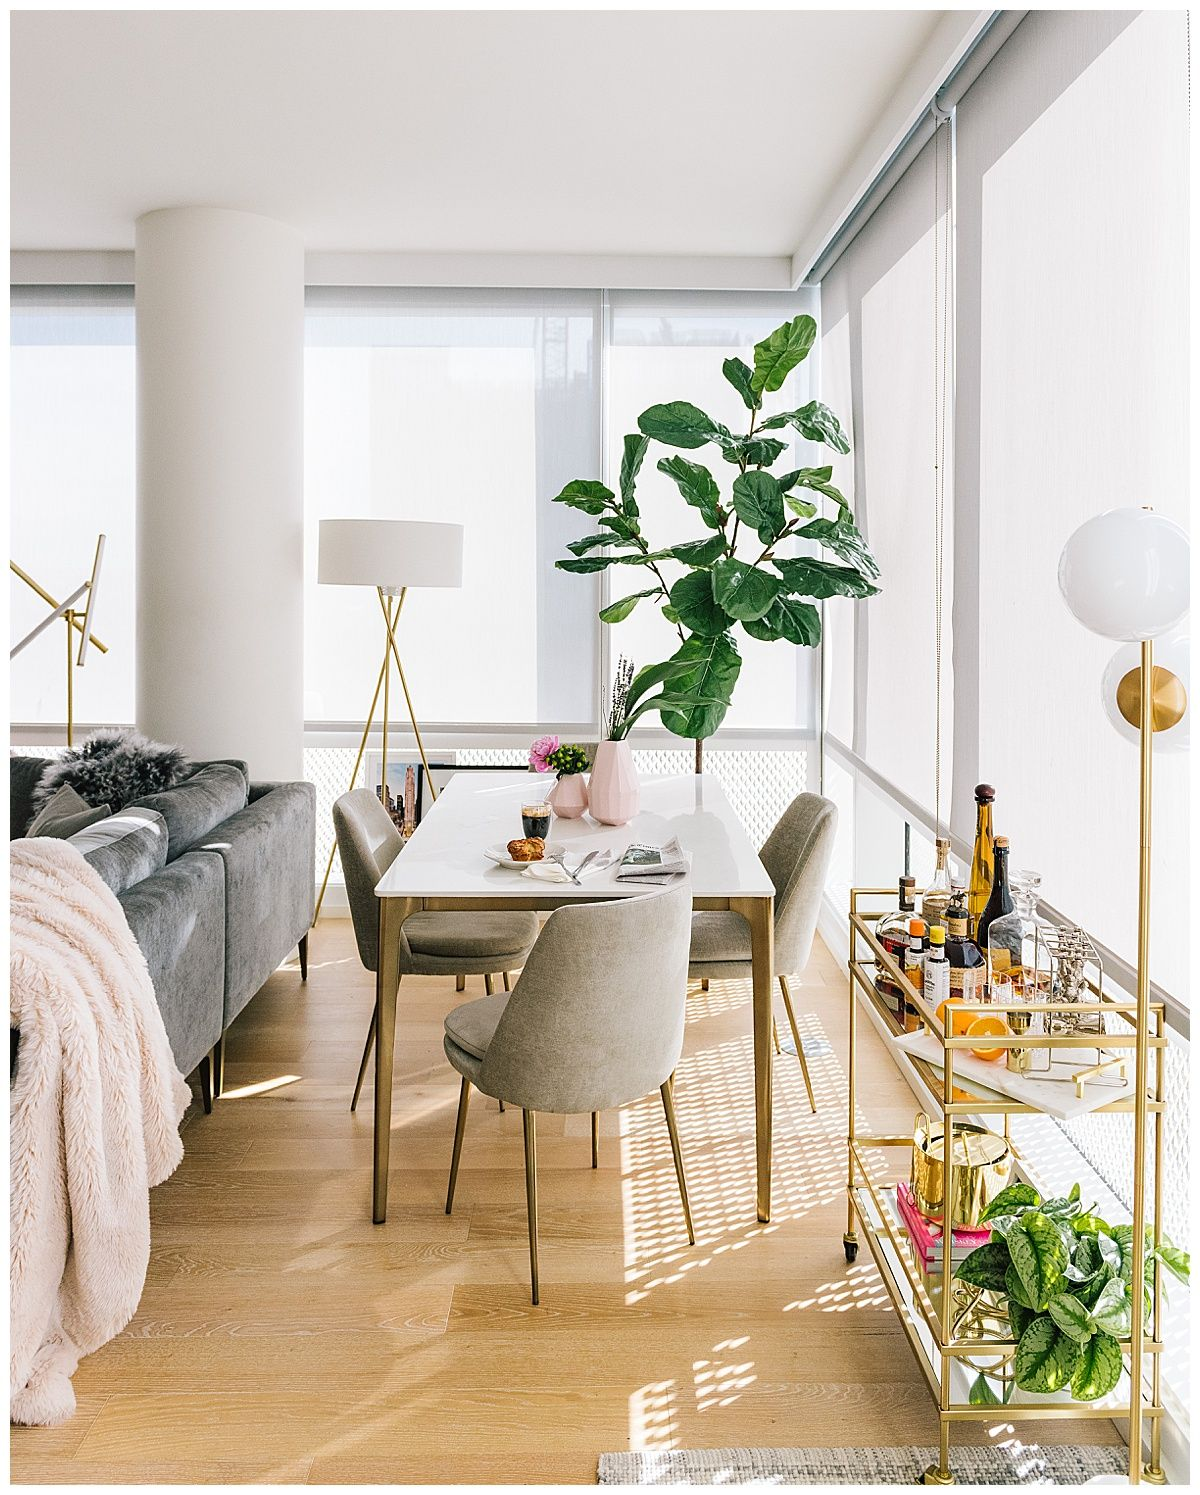 Nyc Apartment Tour Welcome To Olivia Rink Nyc Apartment Decorating Apartment Decor Apartment Living Room #nyc #apartment #living #room #ideas